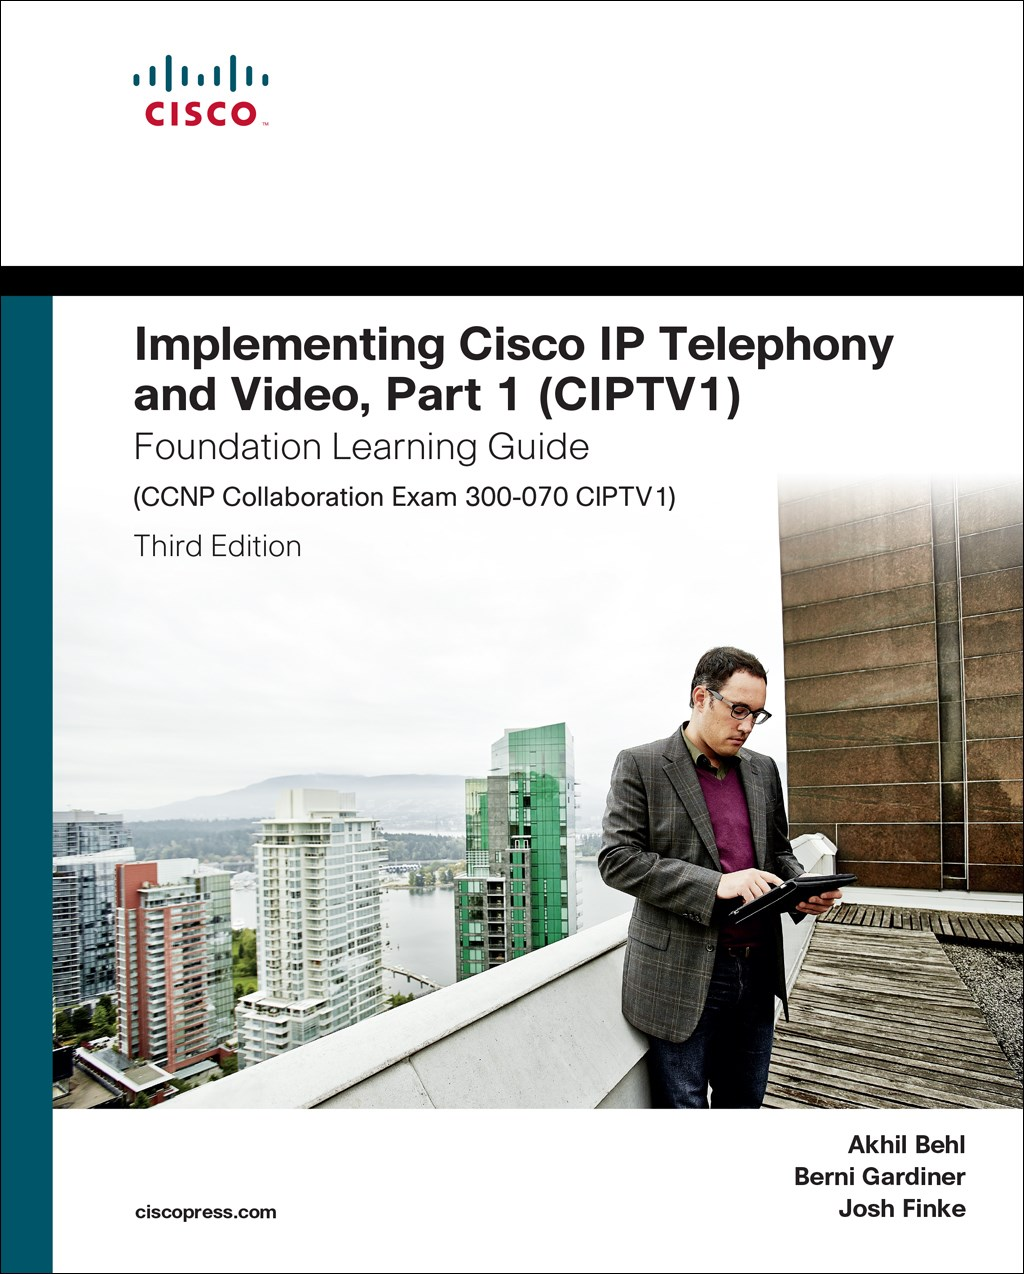 Implementing Cisco IP Telephony and Video, Part 1 (CIPTV1) Foundation Learning Guide (CCNP Collaboration Exam 300-070 CIPTV1), 3rd Edition